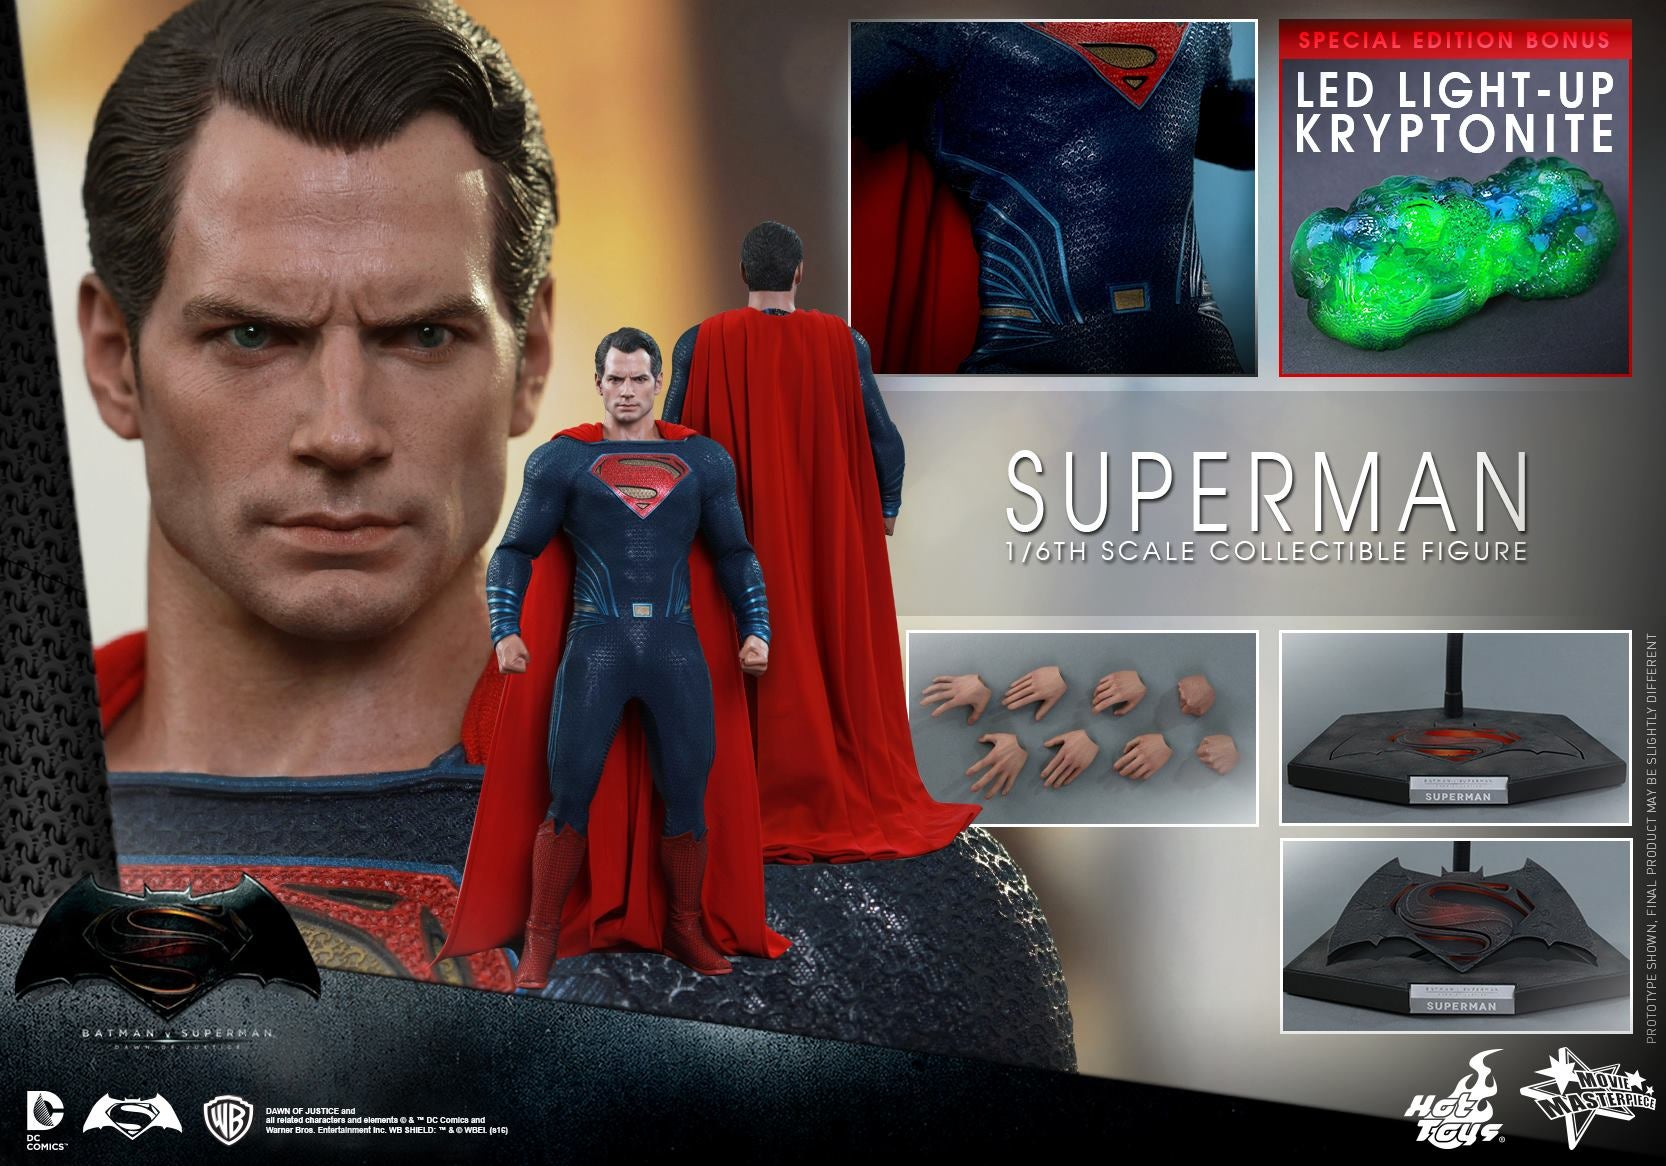 [Action Figures] Todo sobre Action Figures, Hot Toys, Sideshows - Página 6 Bvs-hot-toys-superman-14-162899